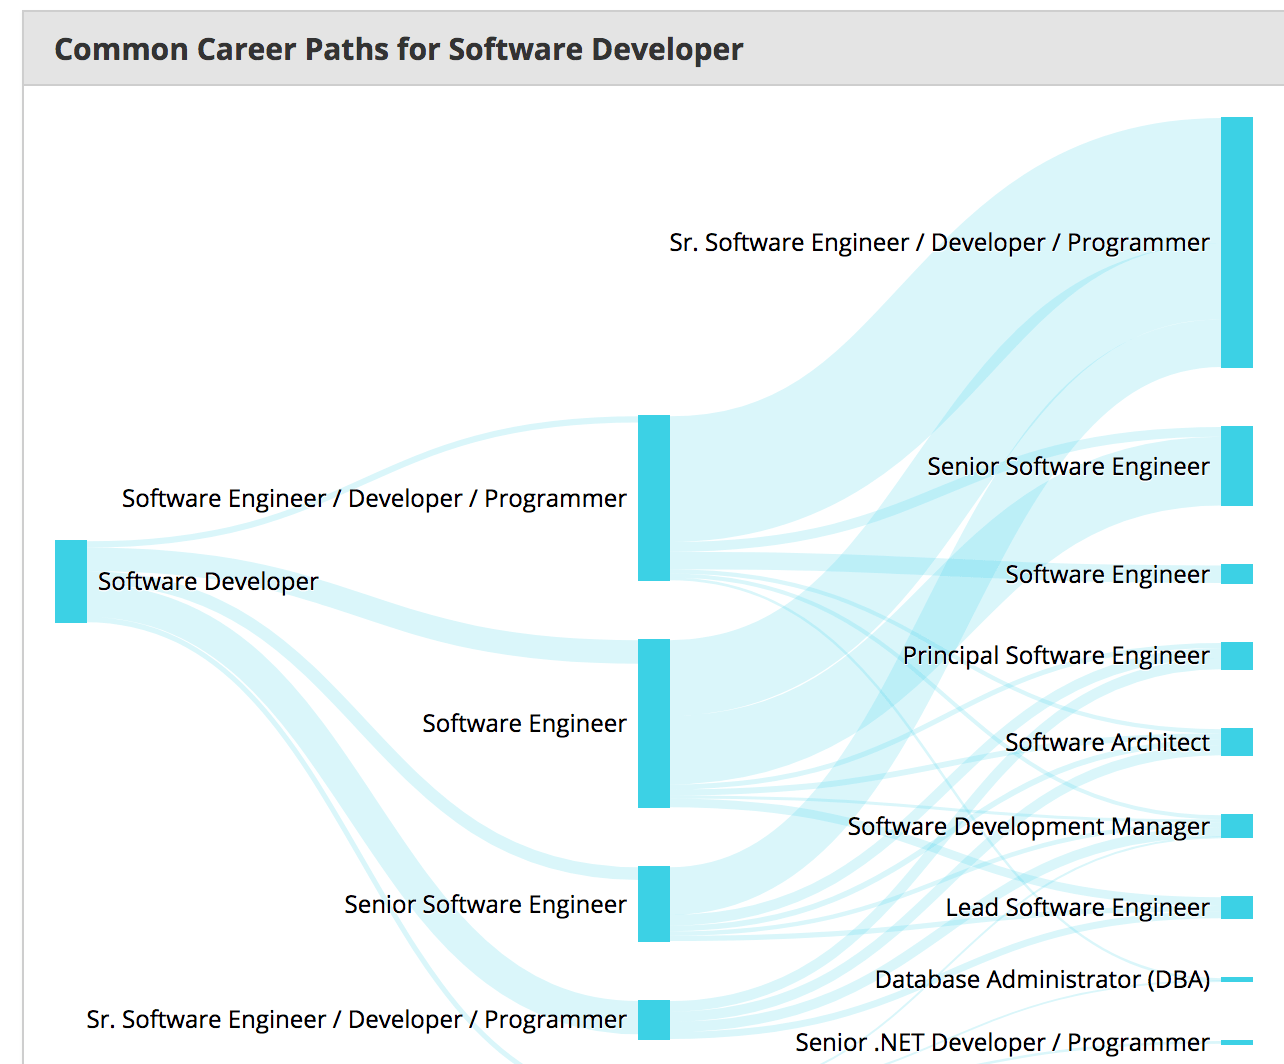 Flow of the jobs in a carreer